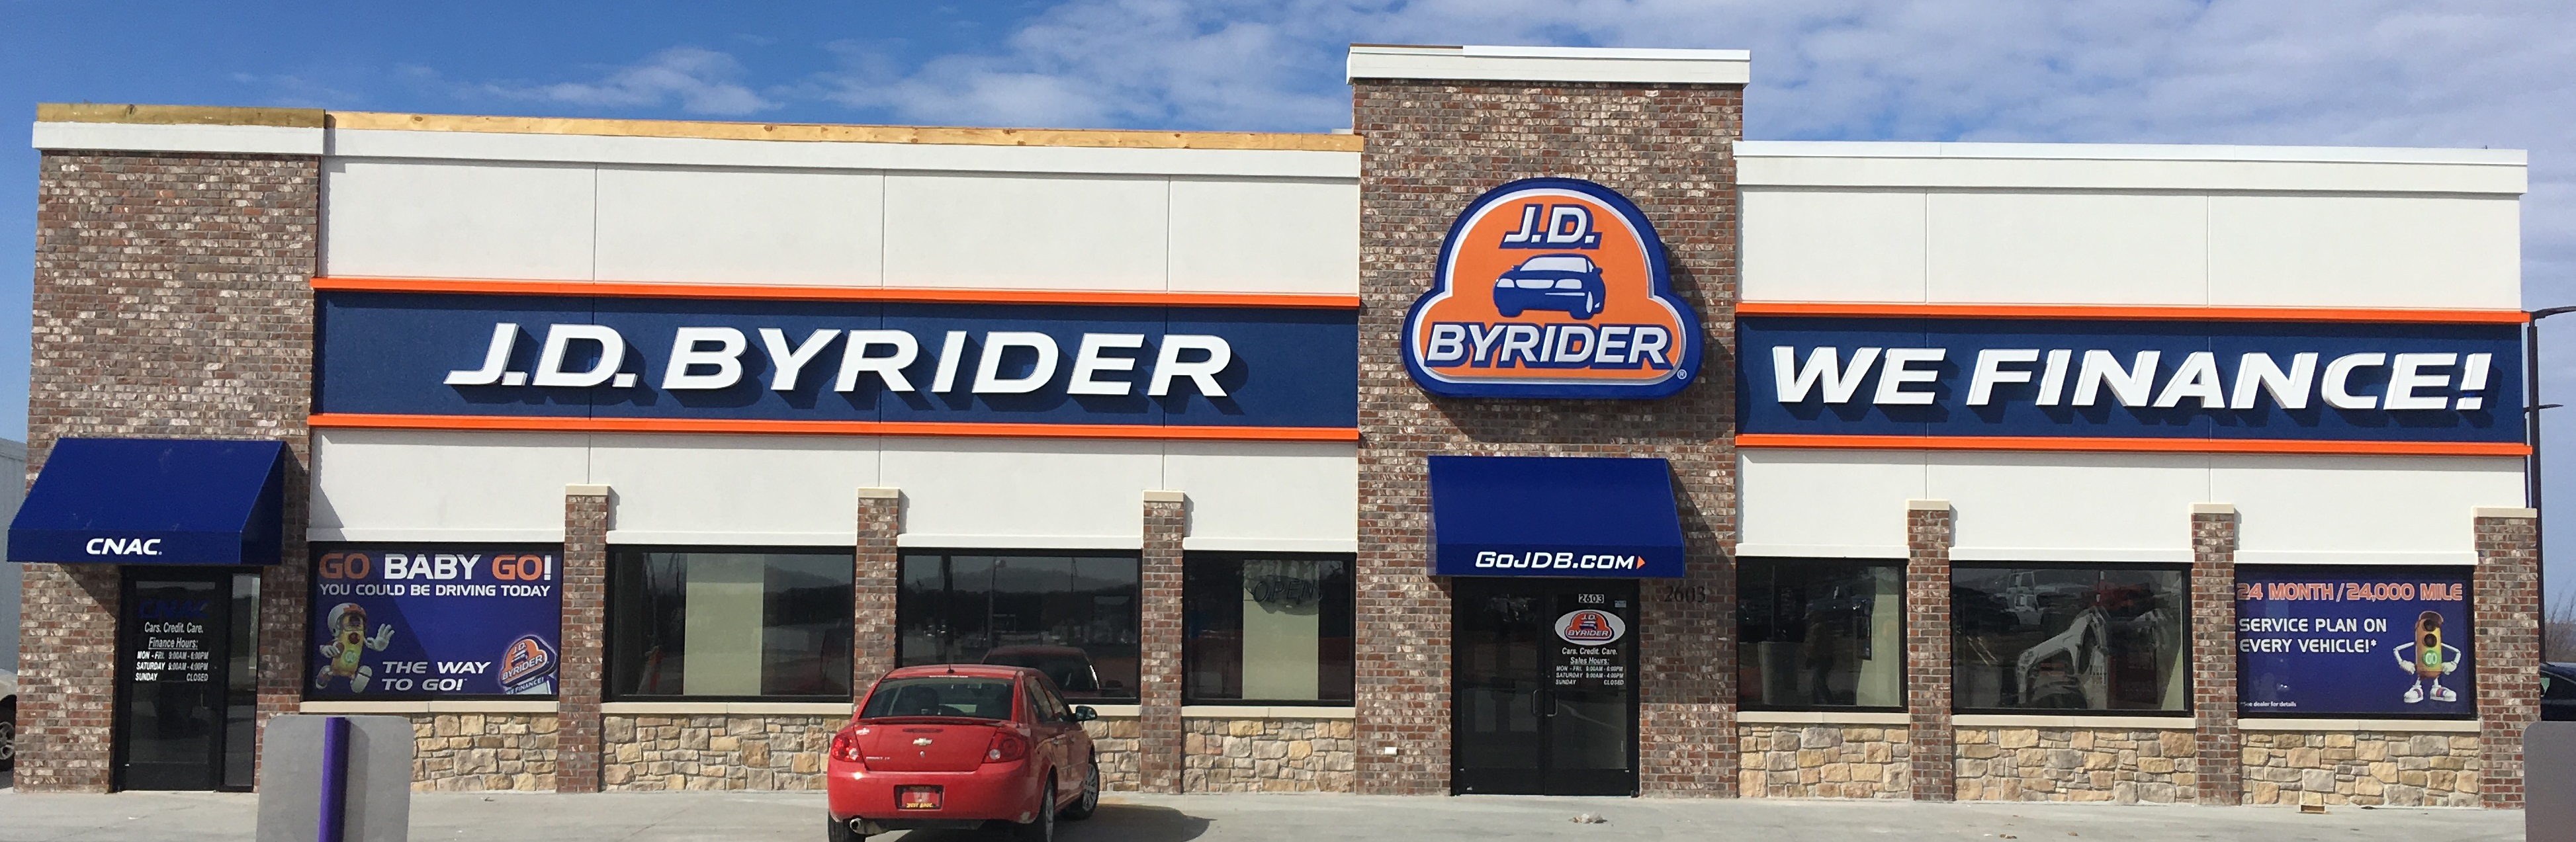 j d byrider opens new location in rolla mo to help customers who are low on cash and credit. Black Bedroom Furniture Sets. Home Design Ideas